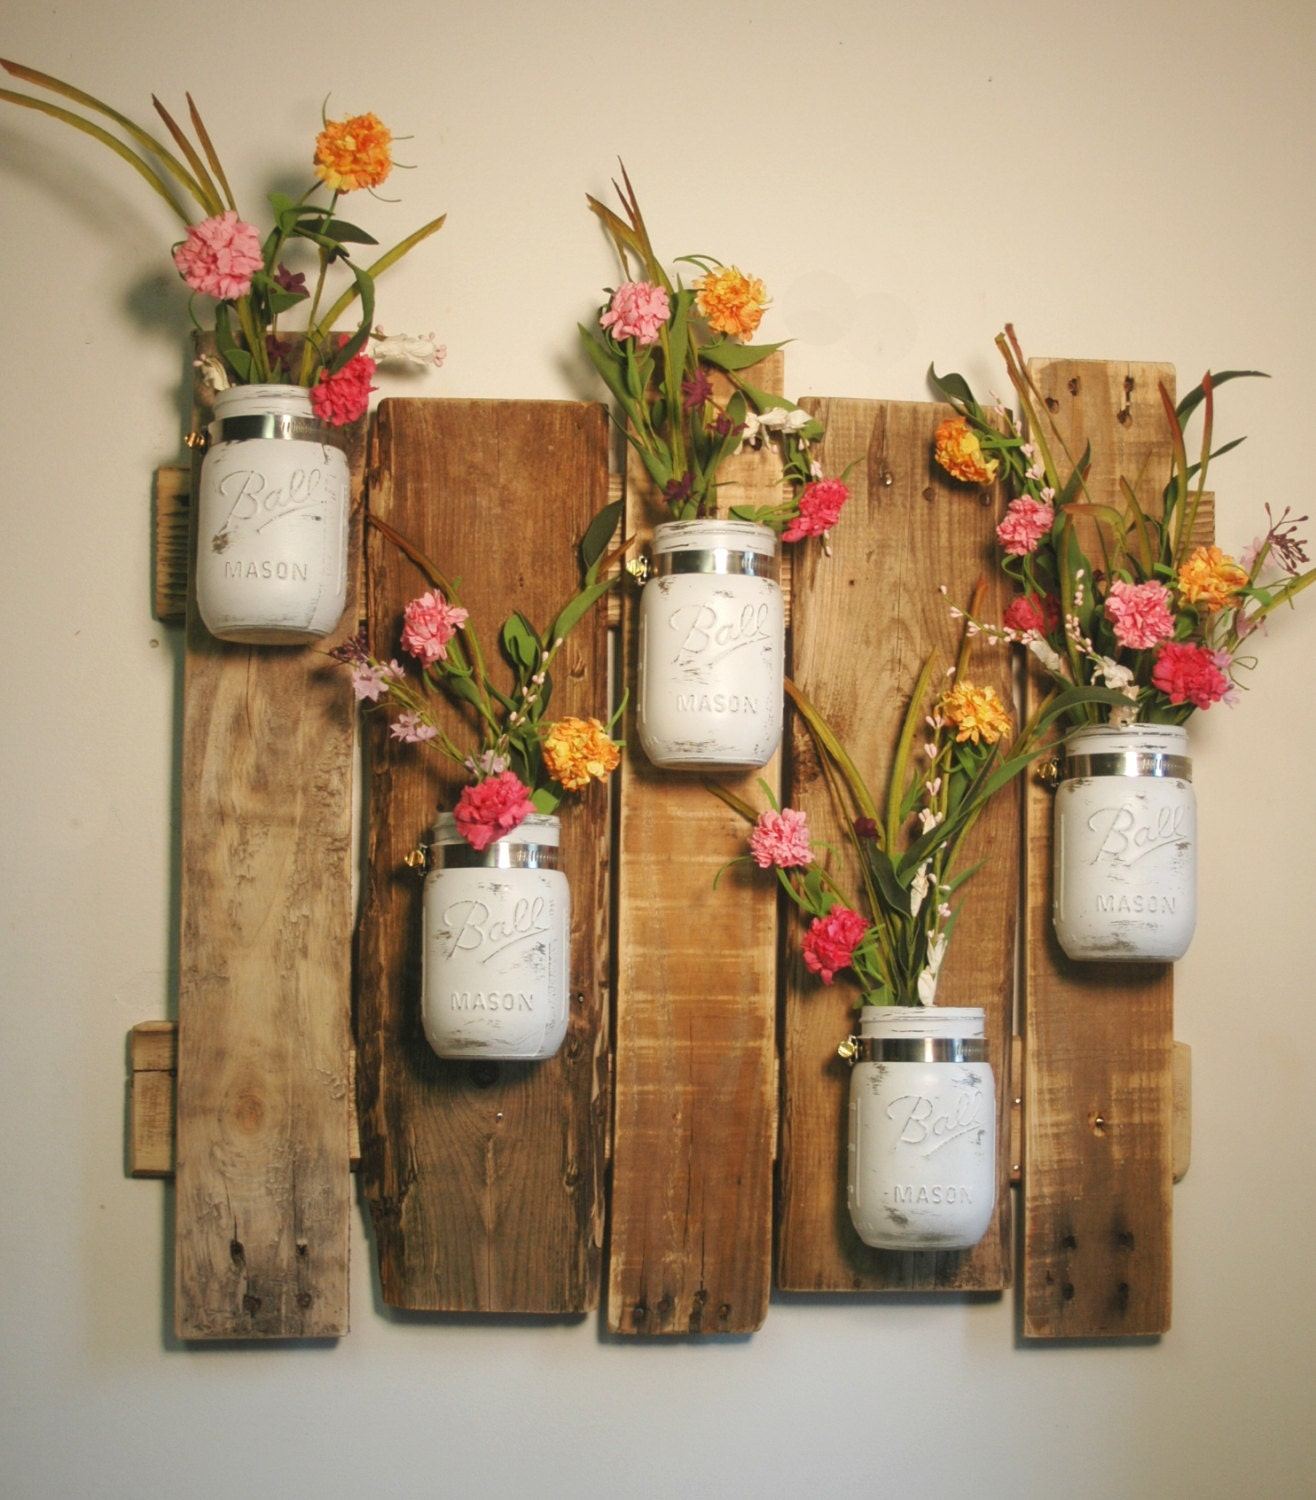 Mason Jar Wall Decor How To : Farmhouse wall decor rustic pallet shabby